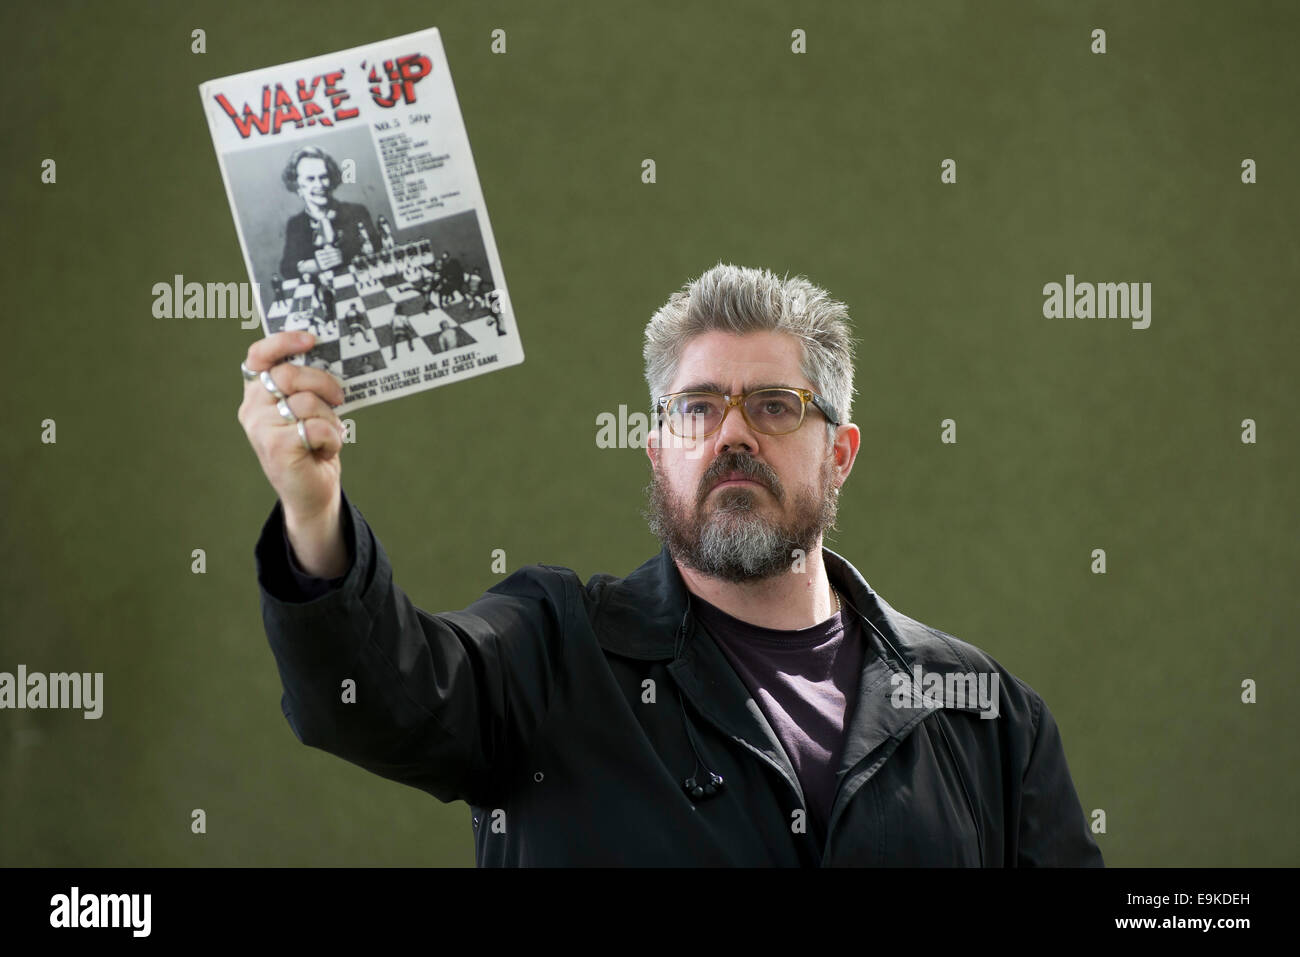 English stand-up and improv comedian, actor, performance poet, cartoonist and podcaster Phil Jupitus. - Stock Image